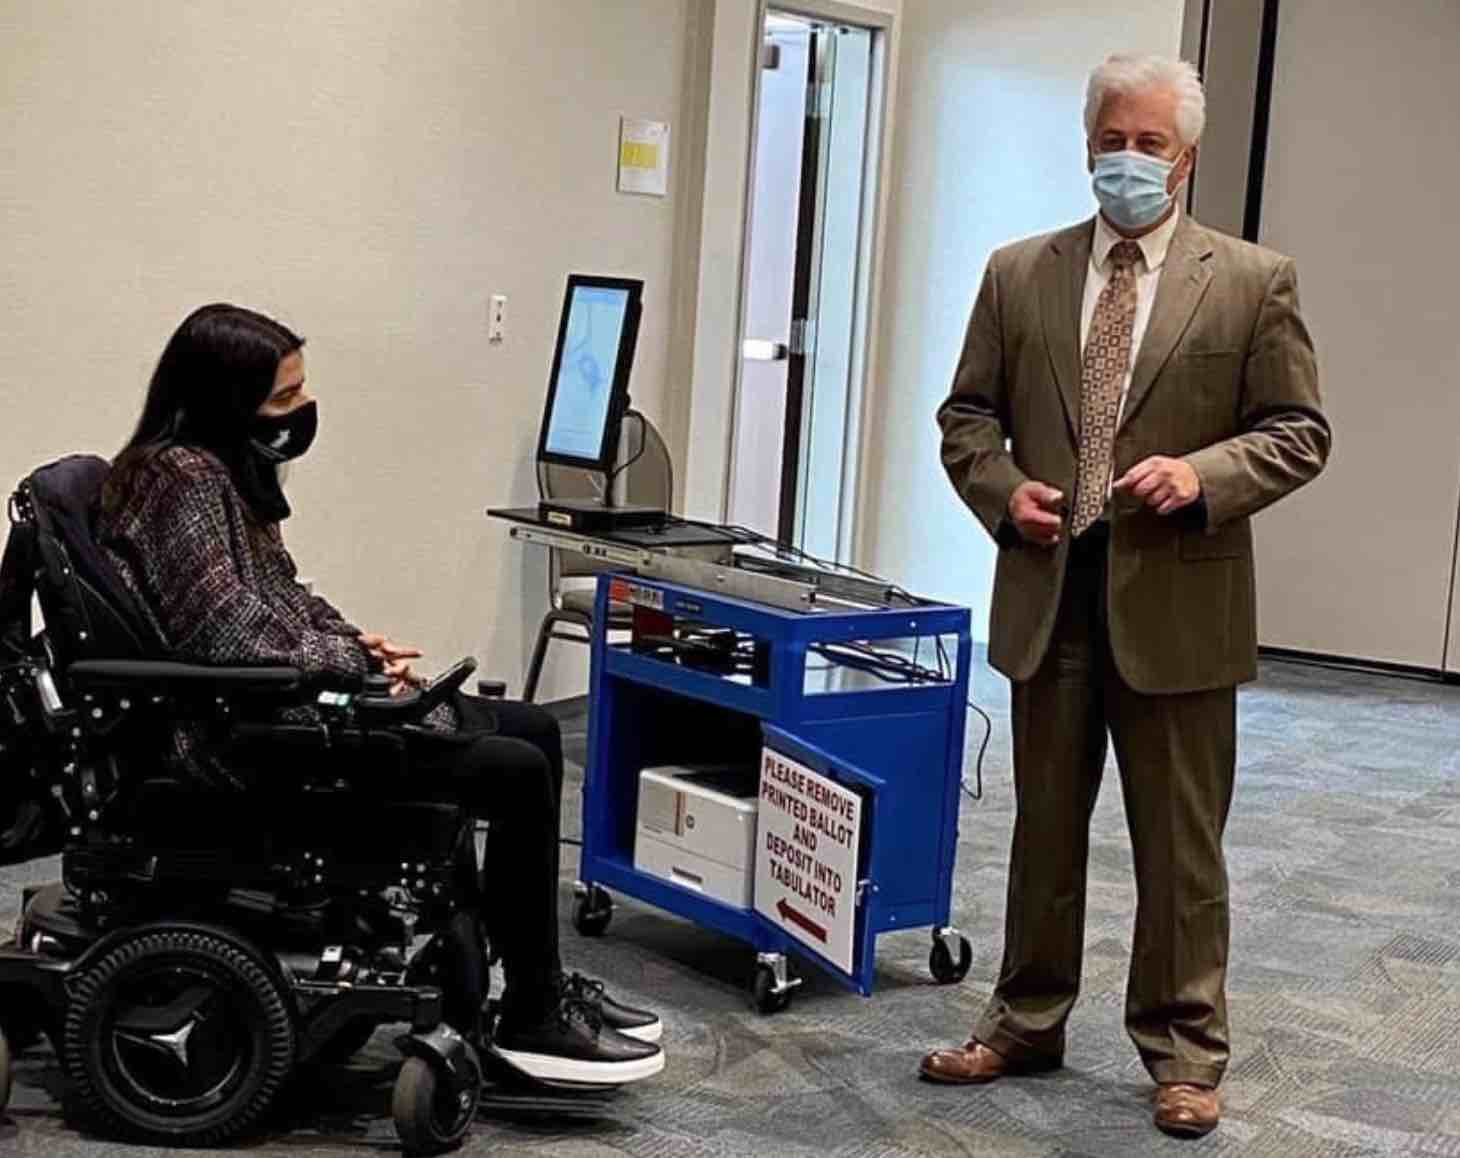 picture of woman using wheelchair and man standing at a voting station